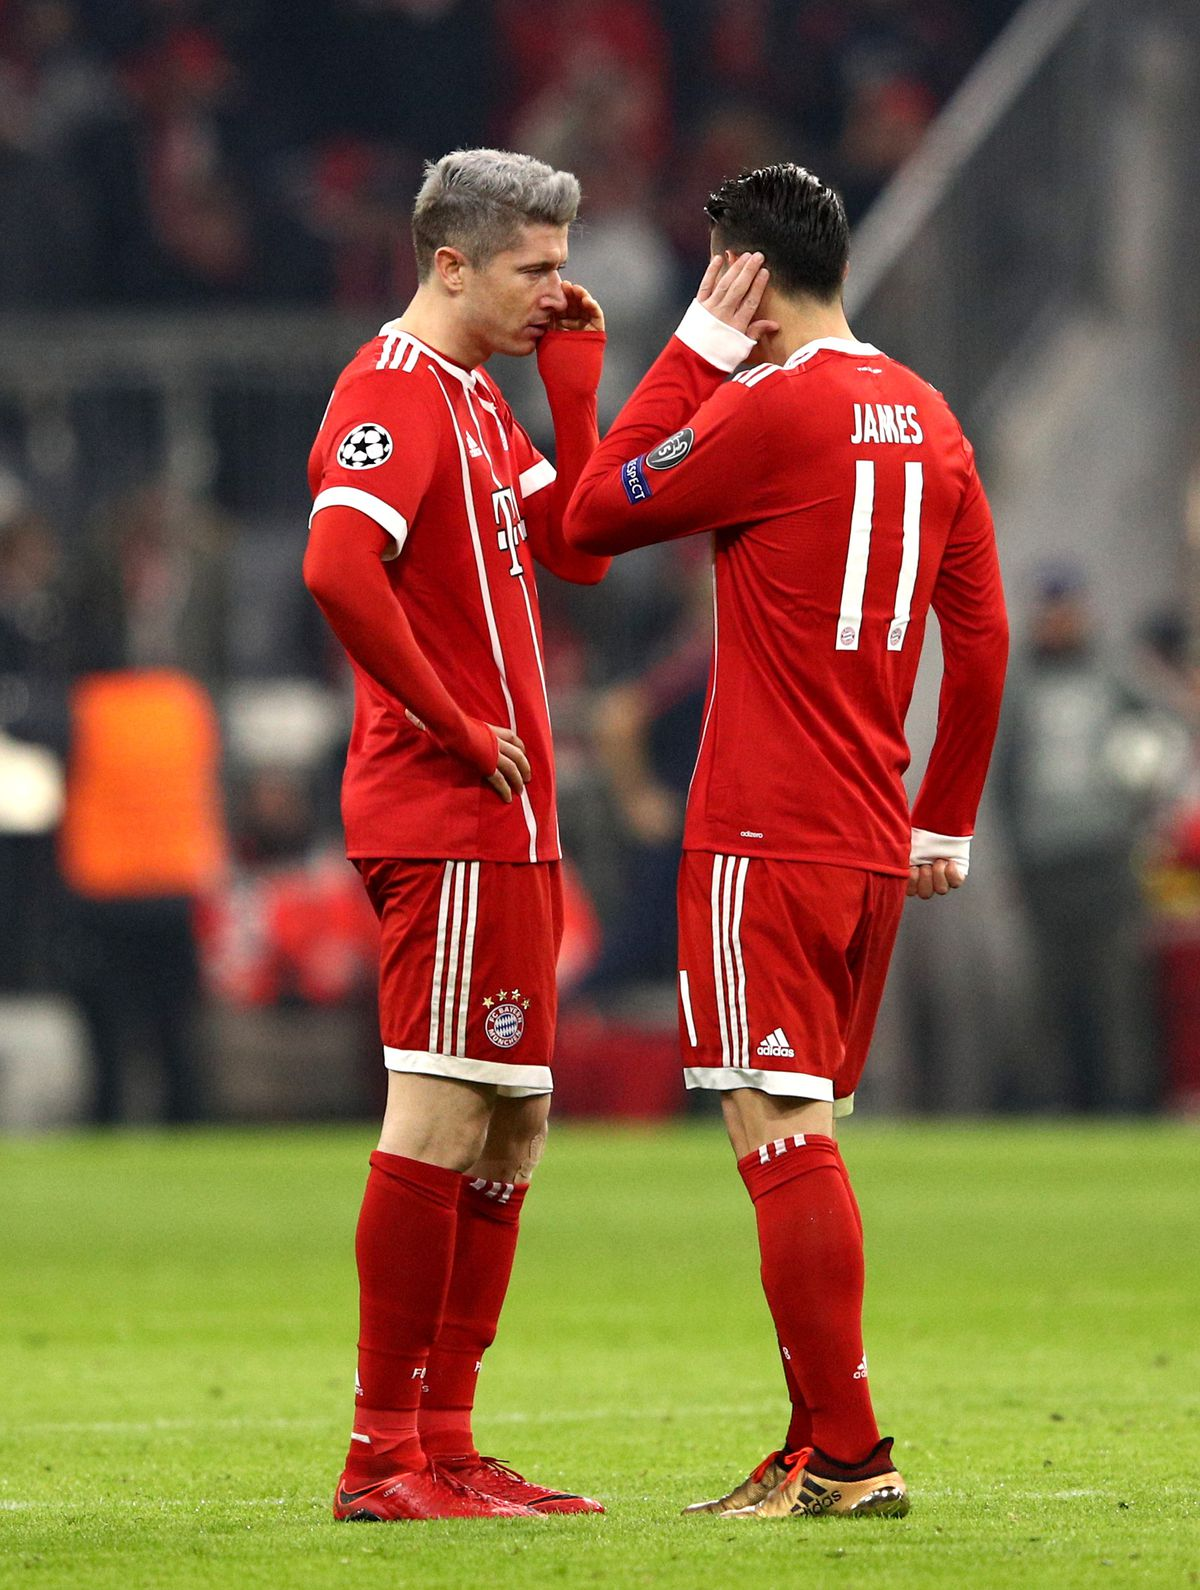 Robert Lewandowski of Bayern Muenche speaks to James Rodriguez of Bayern Muenchen during the UEFA Champions League group B match between Bayern Muenchen and Paris Saint-Germain at Allianz Arena on December 5, 2017 in Munich, Germany.